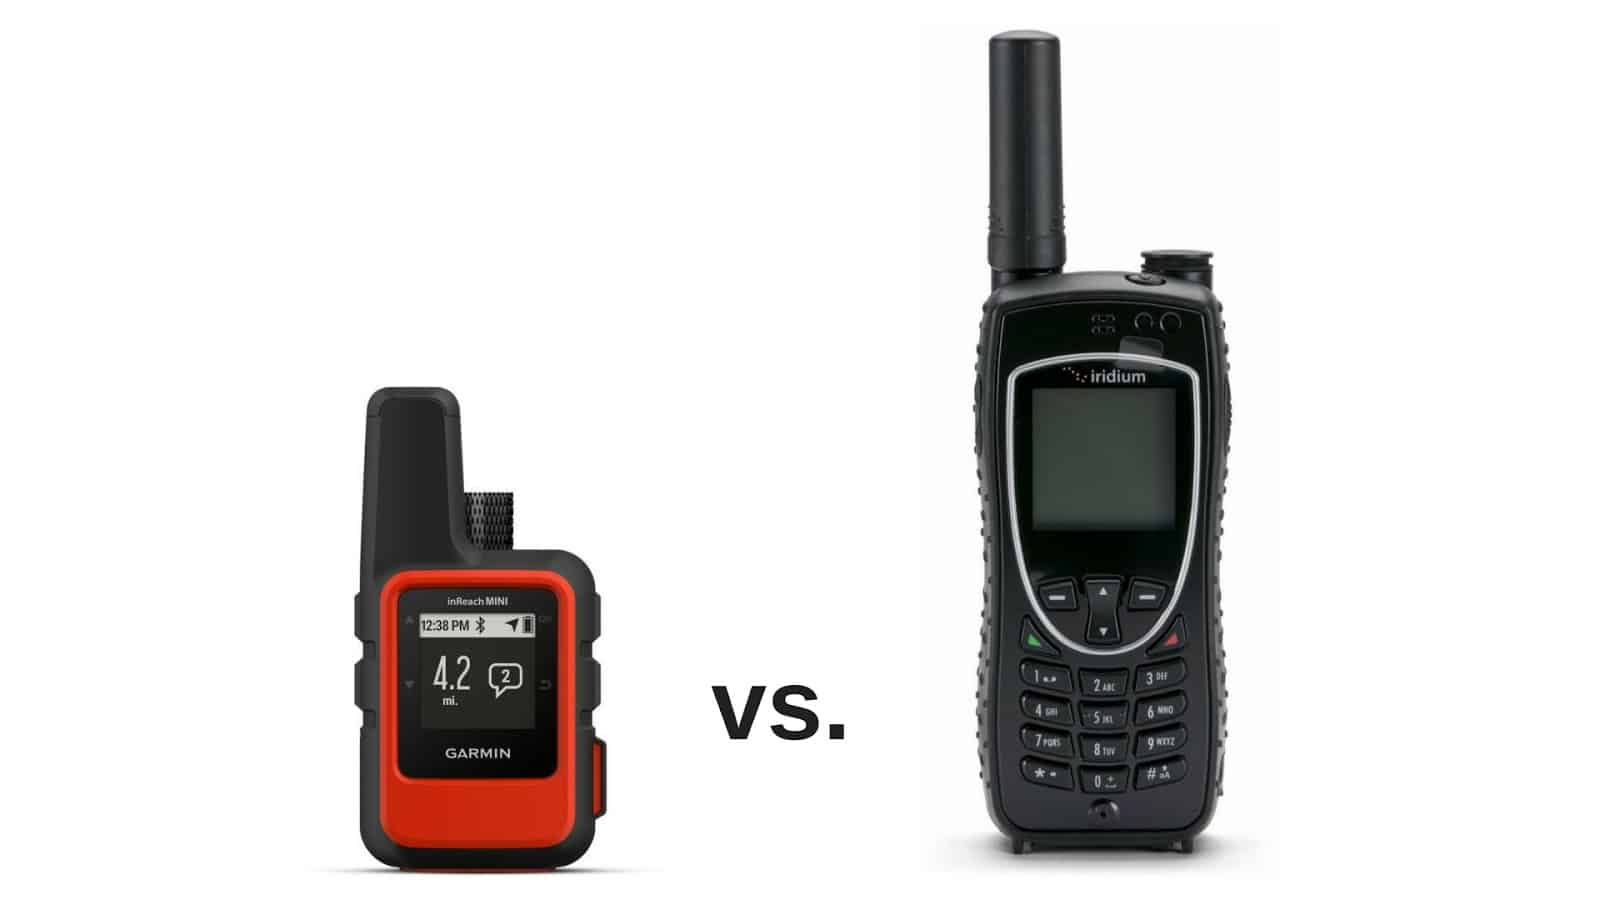 garmin inreach mini vs iridium 9575 extreme satellite phone 2